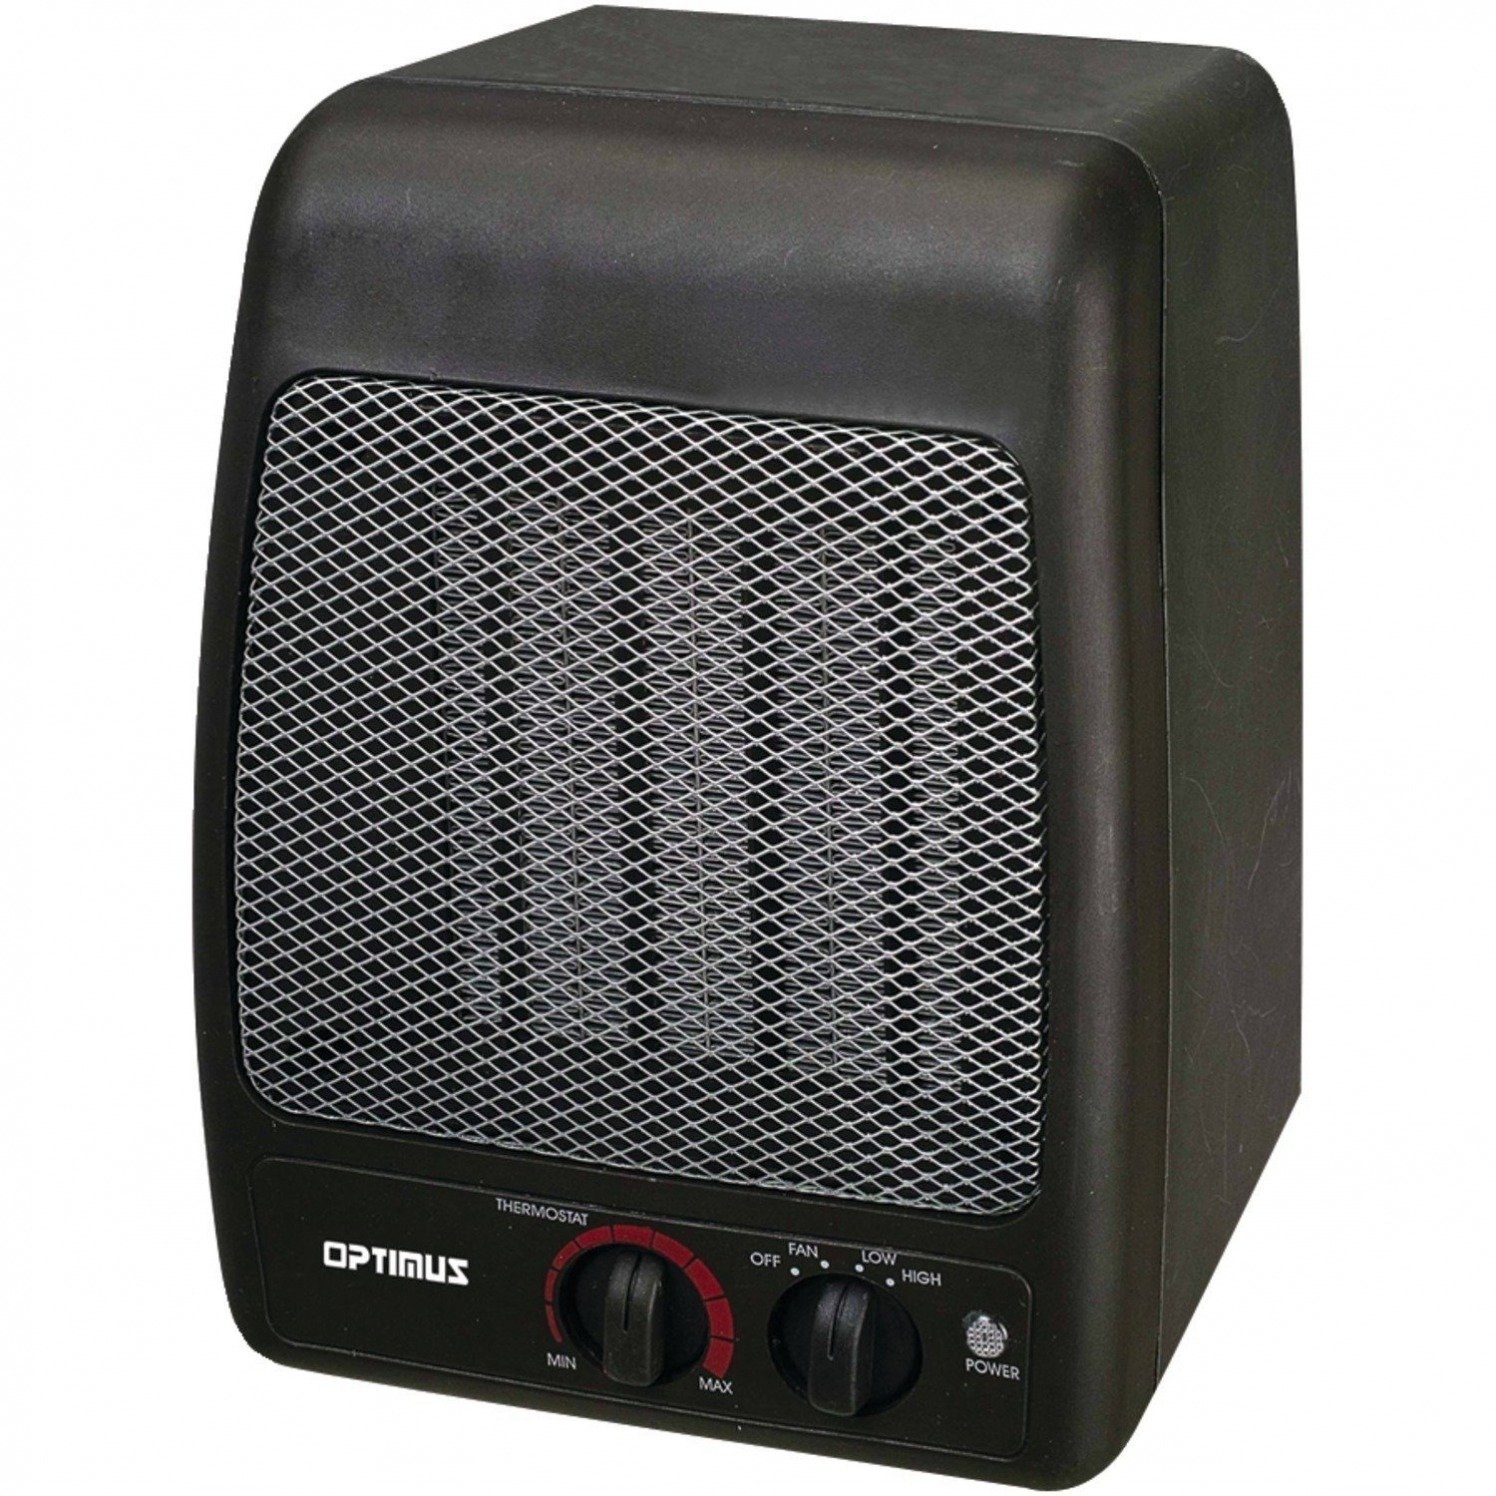 Portable Heater, Optimus H-7000 Black Small Electric Room Portable Patio Heater